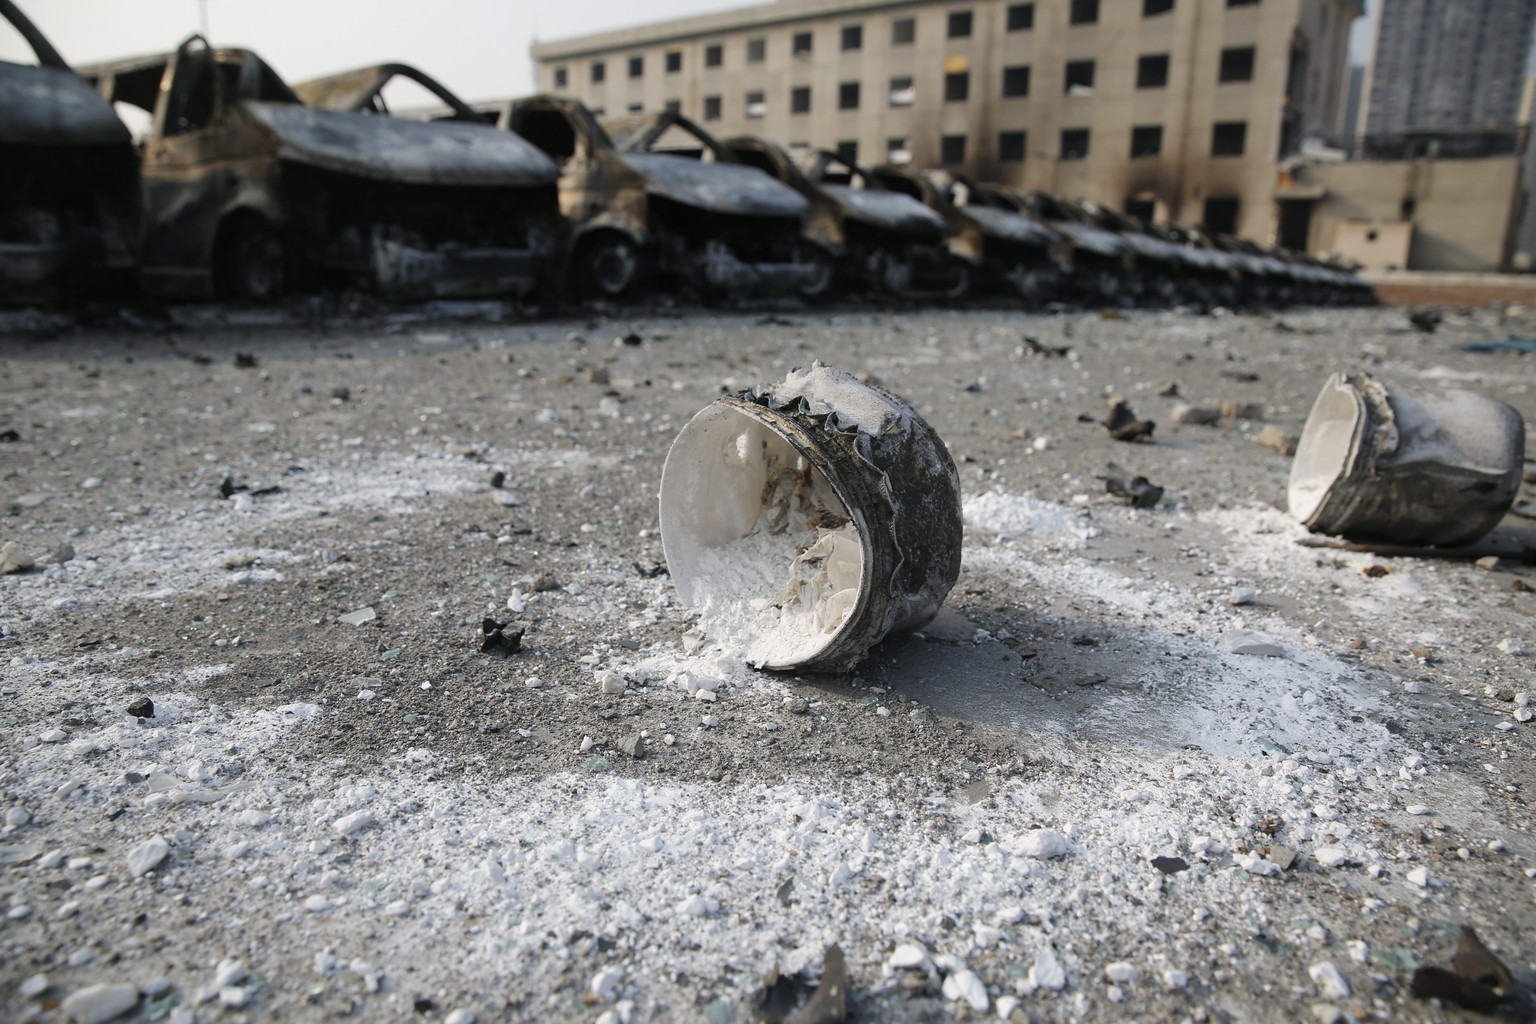 epa04884627 Unidentifiable industrial goods at the explosion site in the aftermath of a huge explosion that rocked the port city of Tianjin, China, 15 August 2015. Explosions and a fireball at a chemical warehouse killed at least 85 people in the north-eastern Chinese port city of Tianjin late on 12 August. New explosions rocked a chemical warehouse in northern China as police ordered residents to evacuate buildings within a three-kilometre radius, state media said on 15 August.  EPA/WU HONG